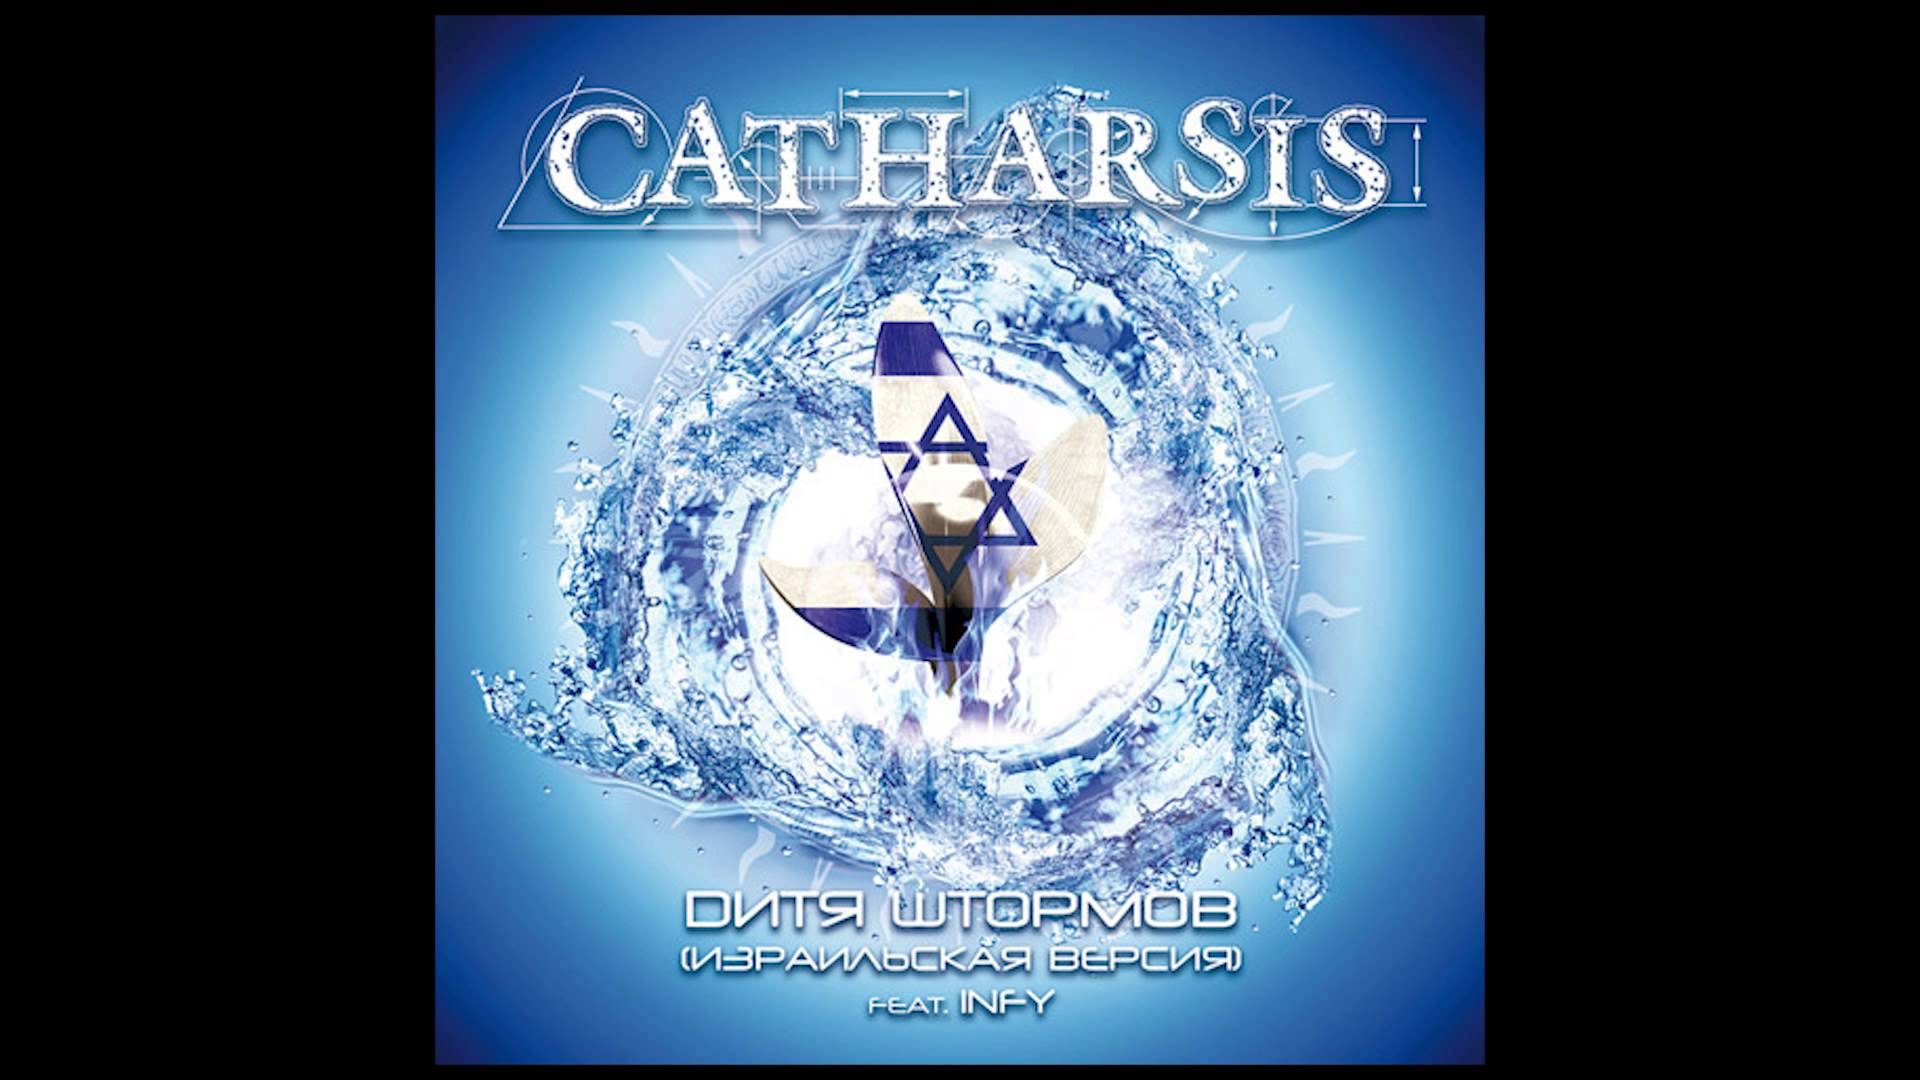 Catharsis - Child of Storms (Дитя штормов) ft. Infy